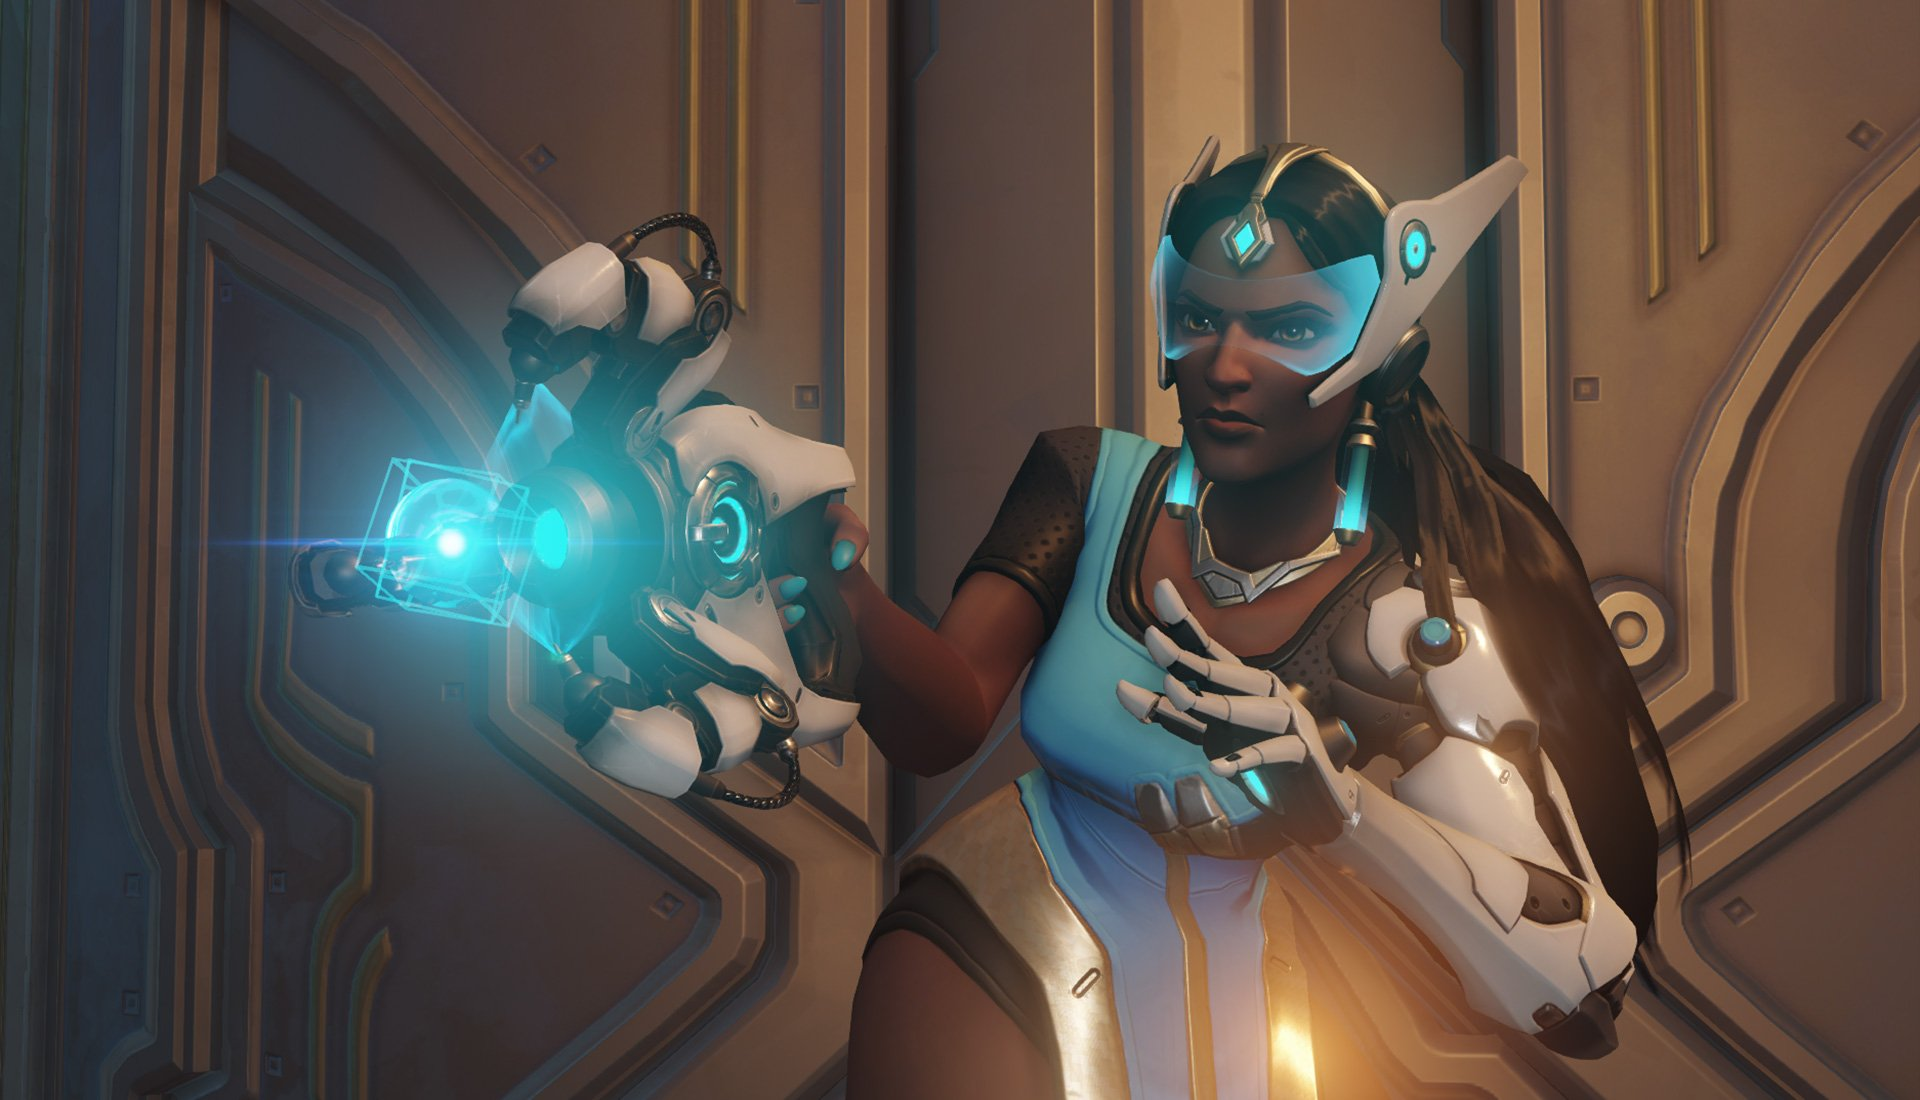 Symmetra's triangle box thing is on point.